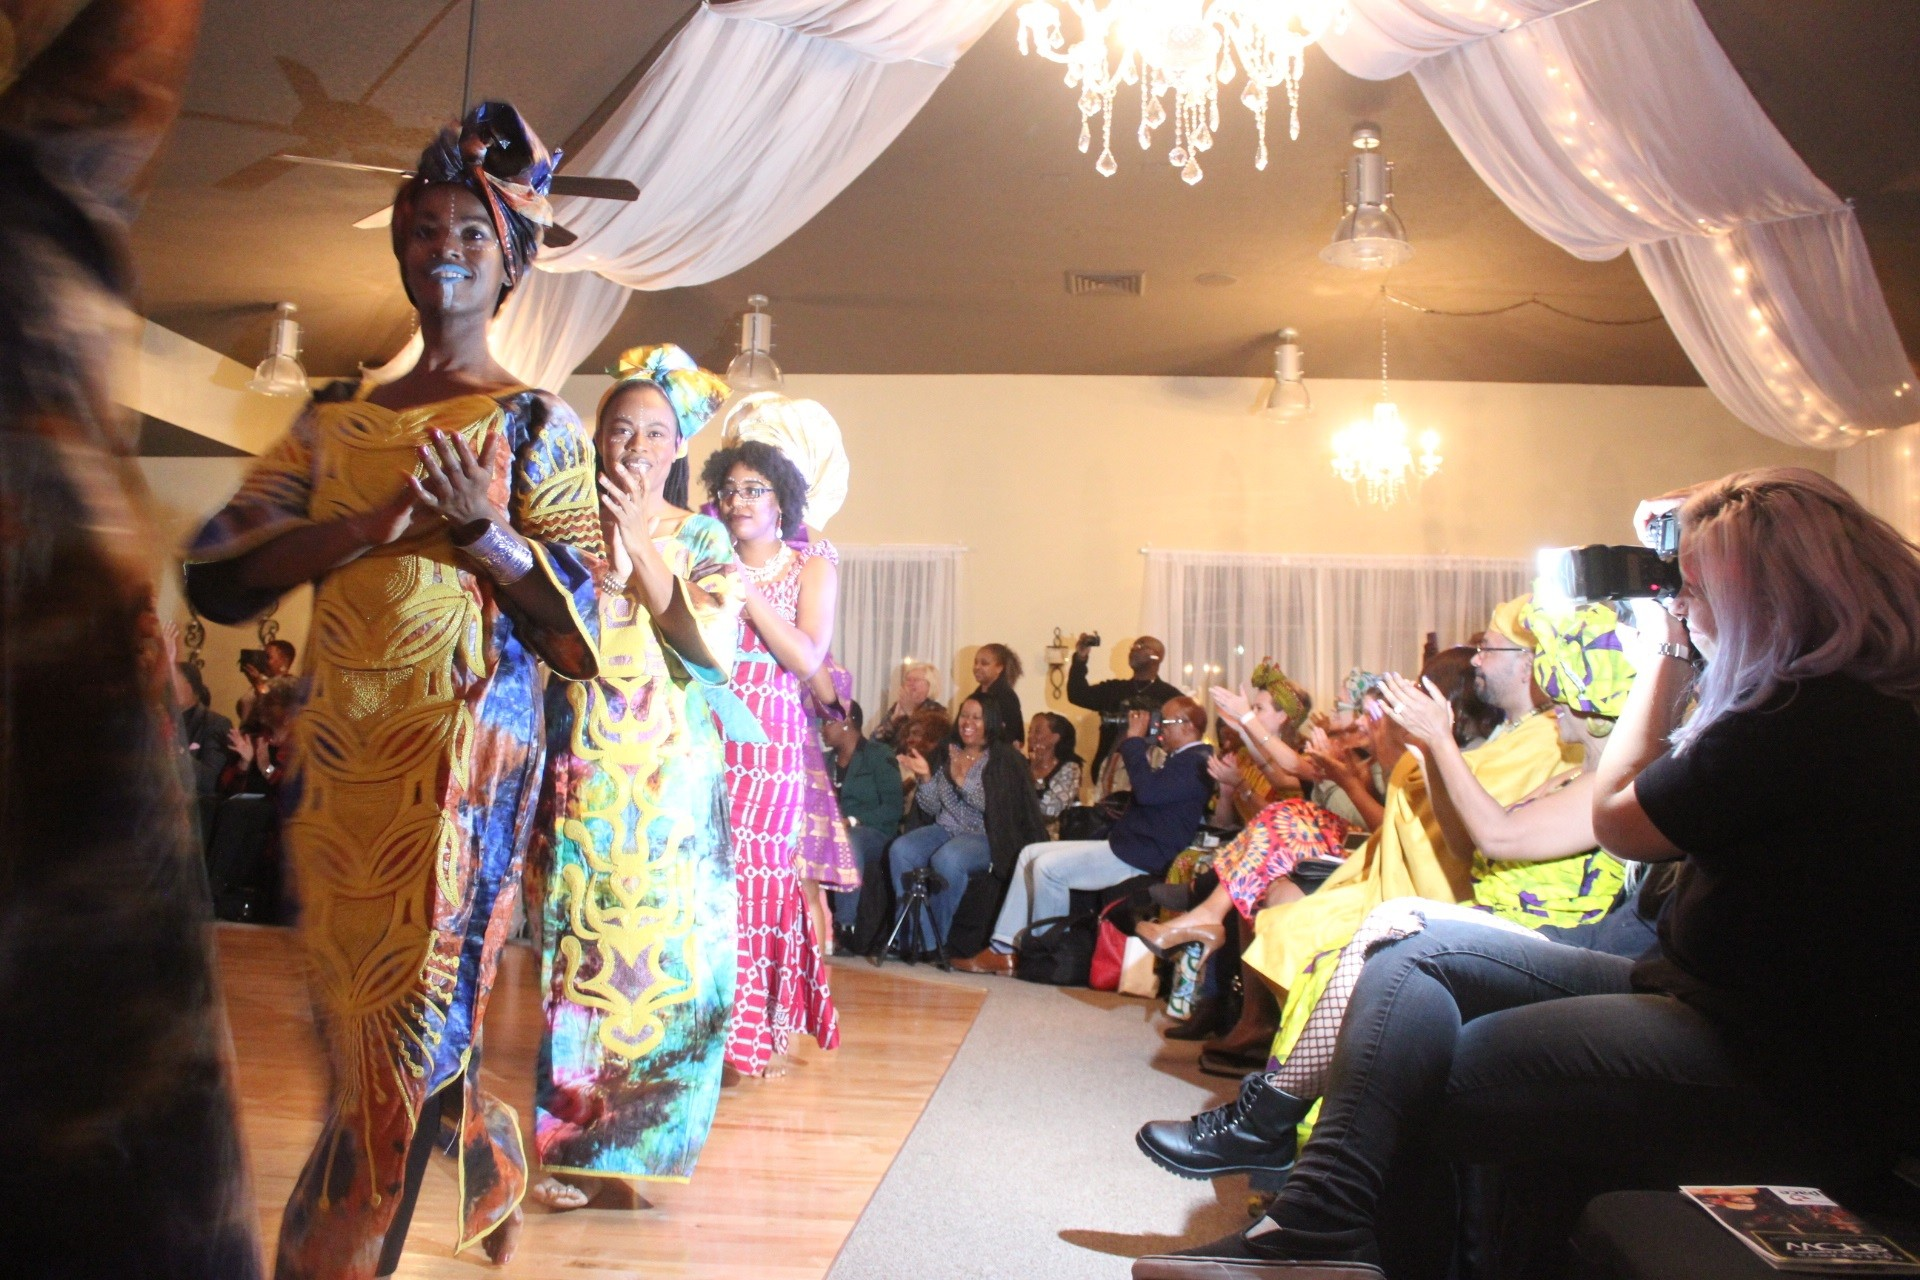 Roughly 30 models took part in a fashion show benefiting the Clay PACE Center for Girls. The show featured almost entirely black models wearing traditional African garb to honor Black History Month.